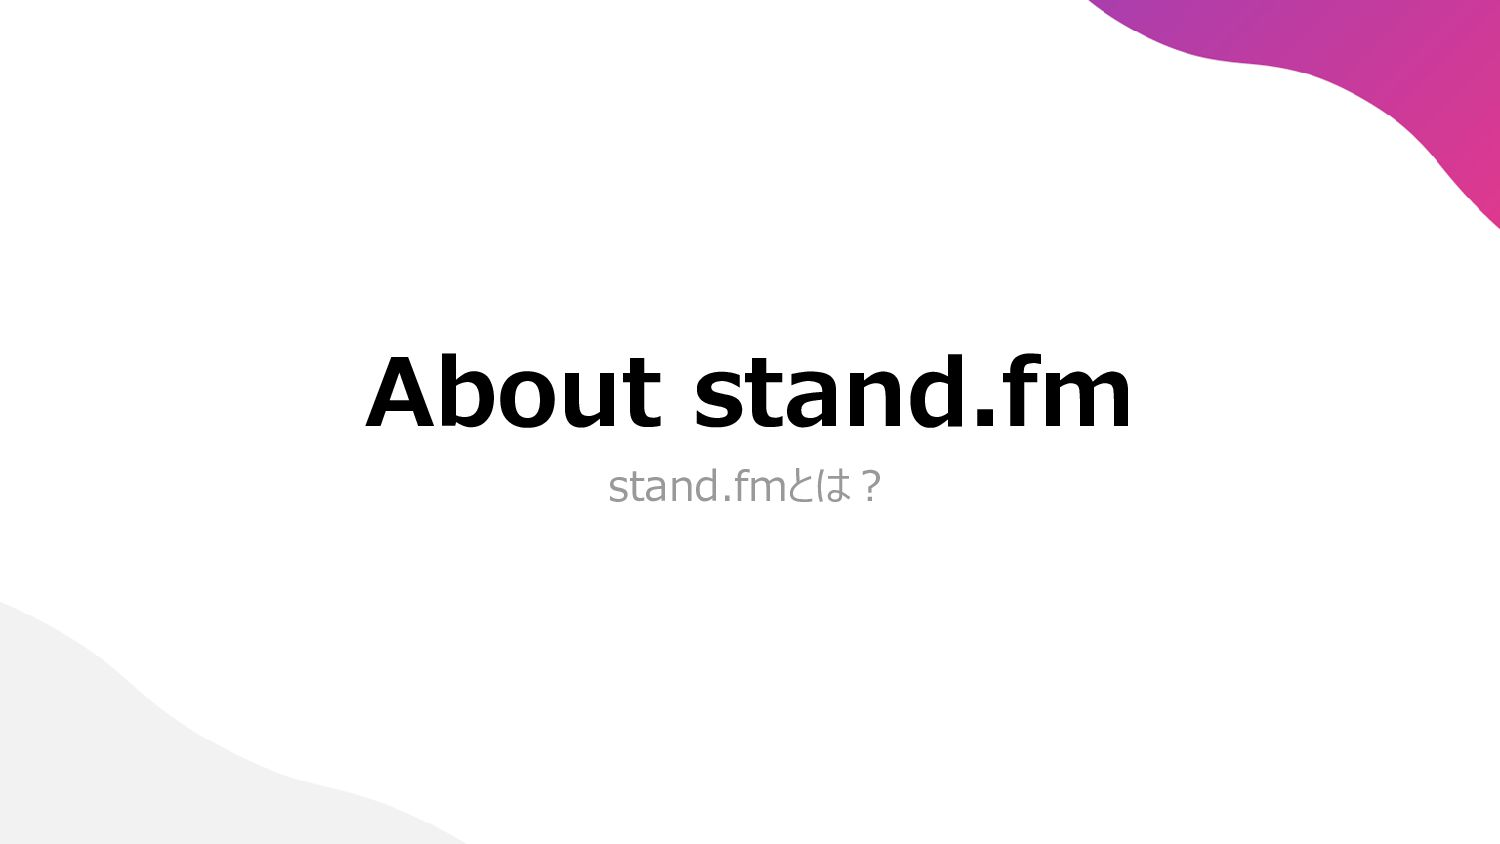 About stand.fm stand.fmとは?